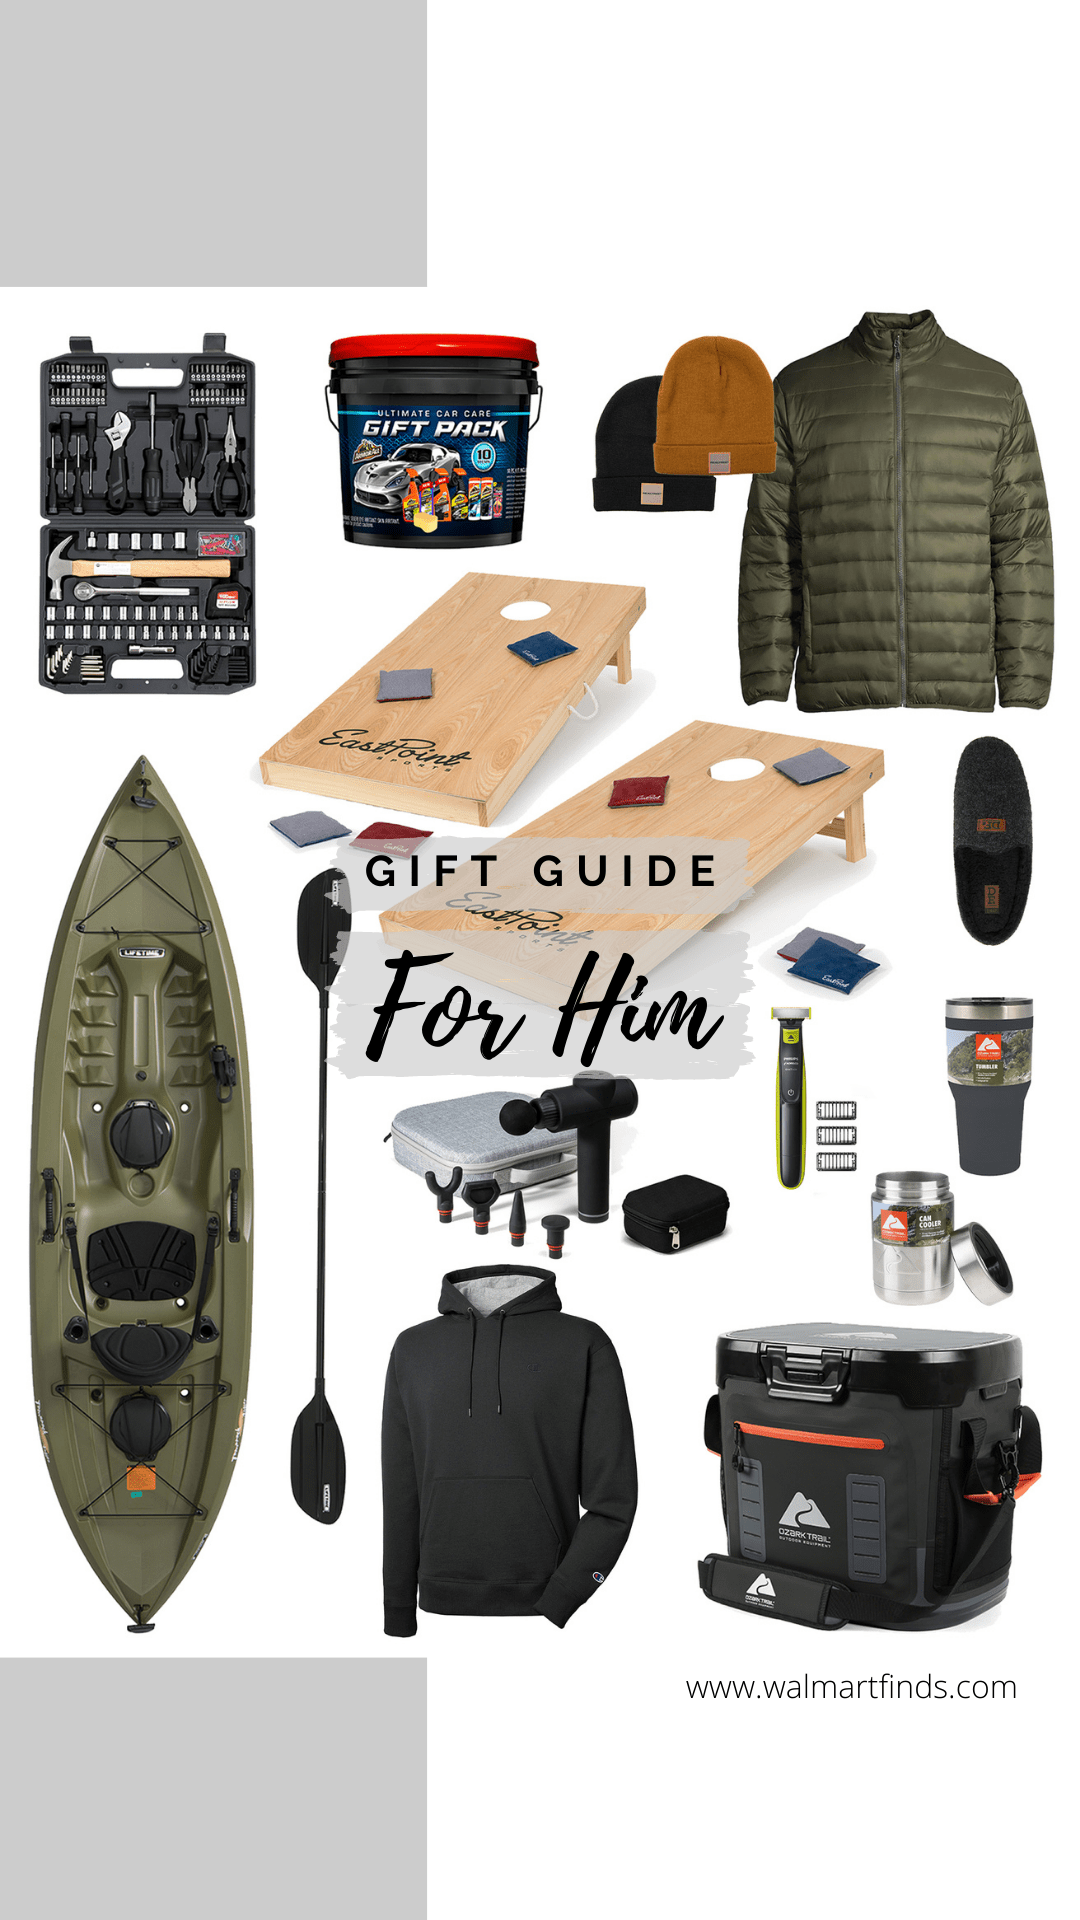 Gift Guide - For Him - kayak, slippers, cooler, razor, massage gun, corn hole boards and more